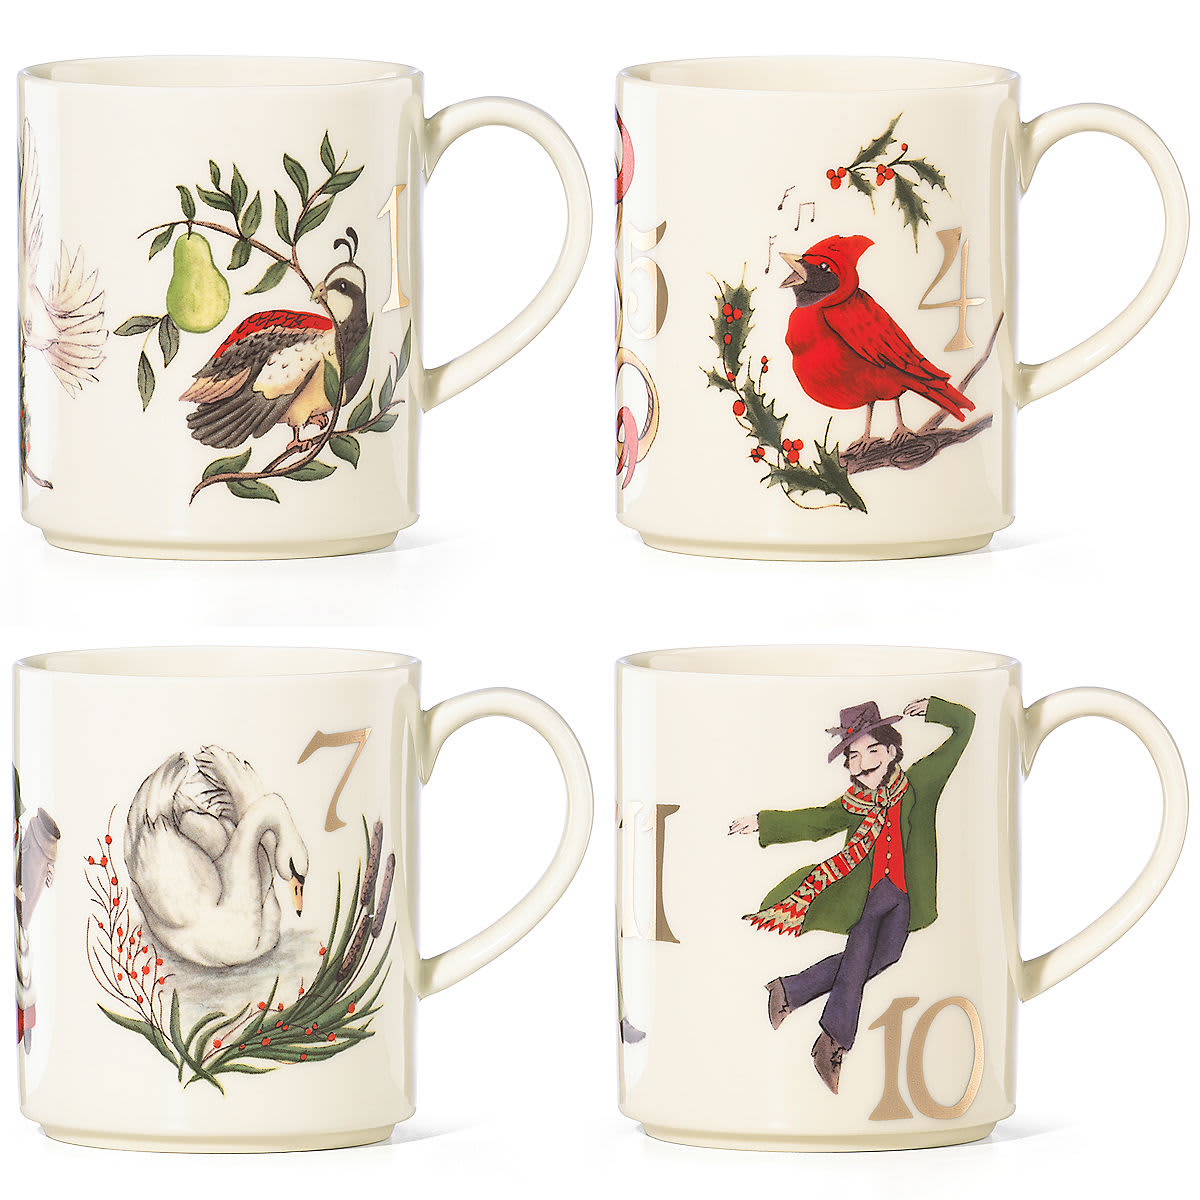 Lenox 12 Days of Christmas Dinnerware and Ornaments